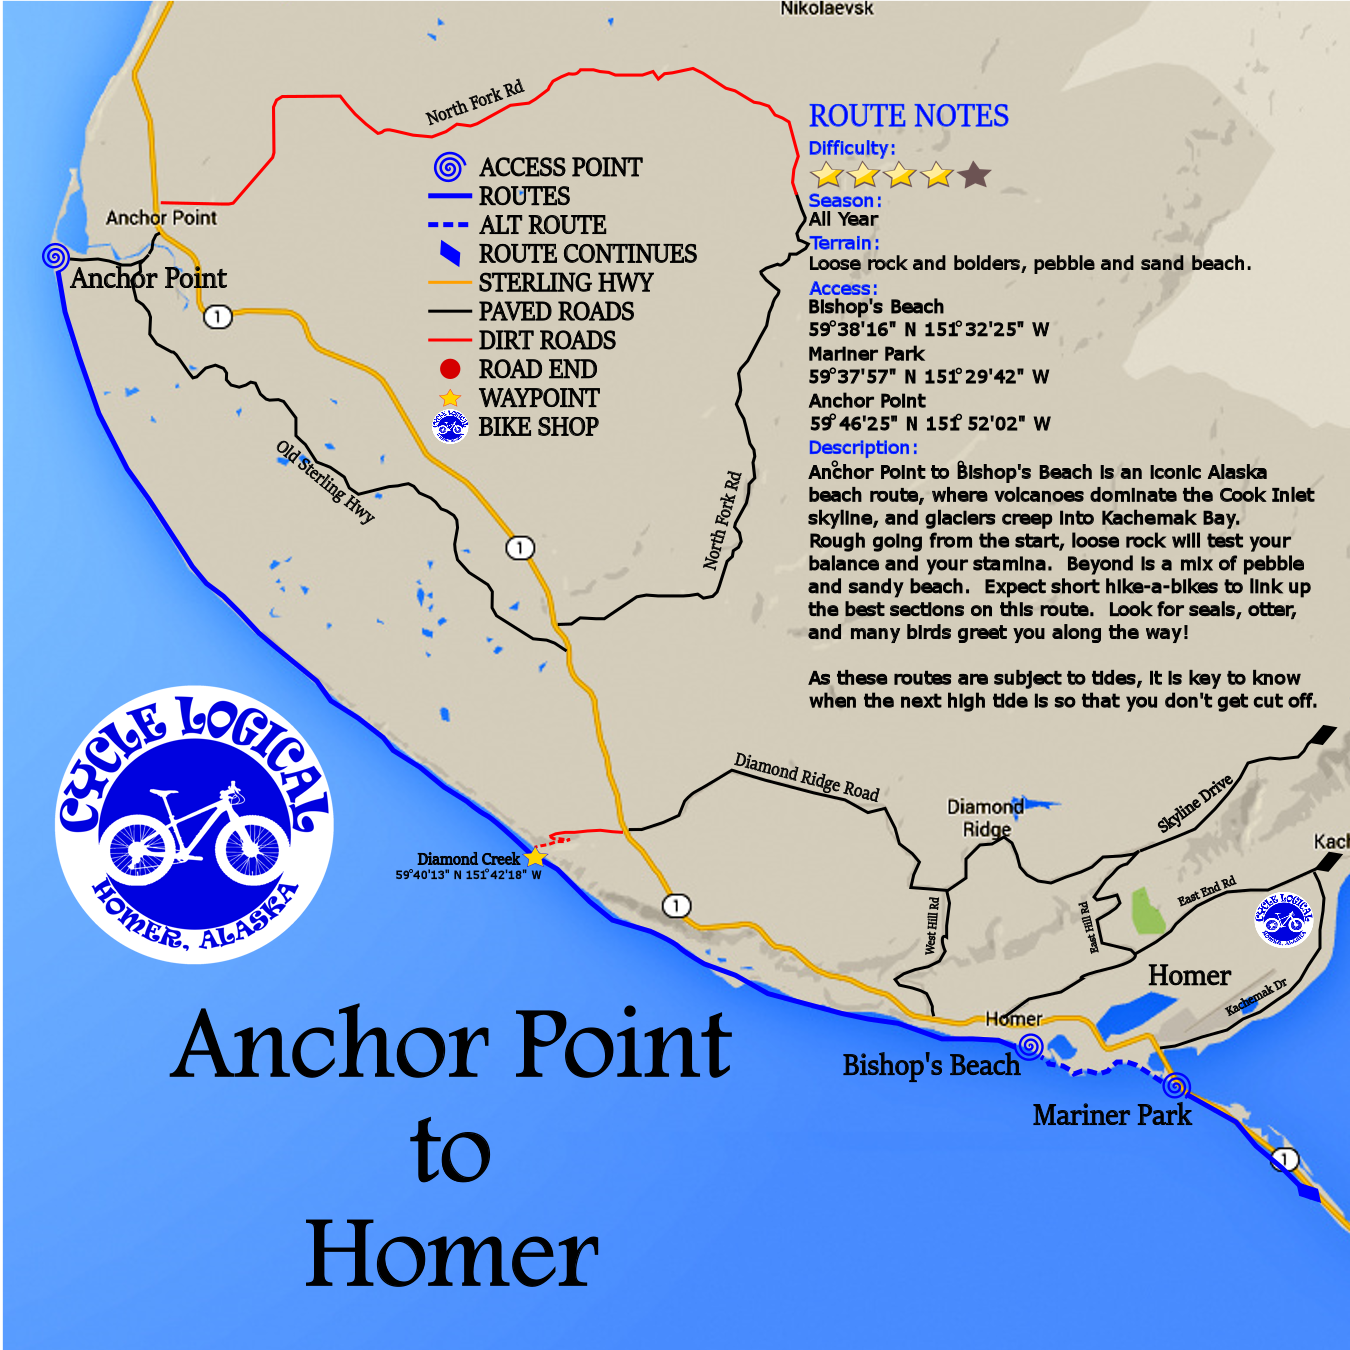 Anchor Point to Homer Map.png